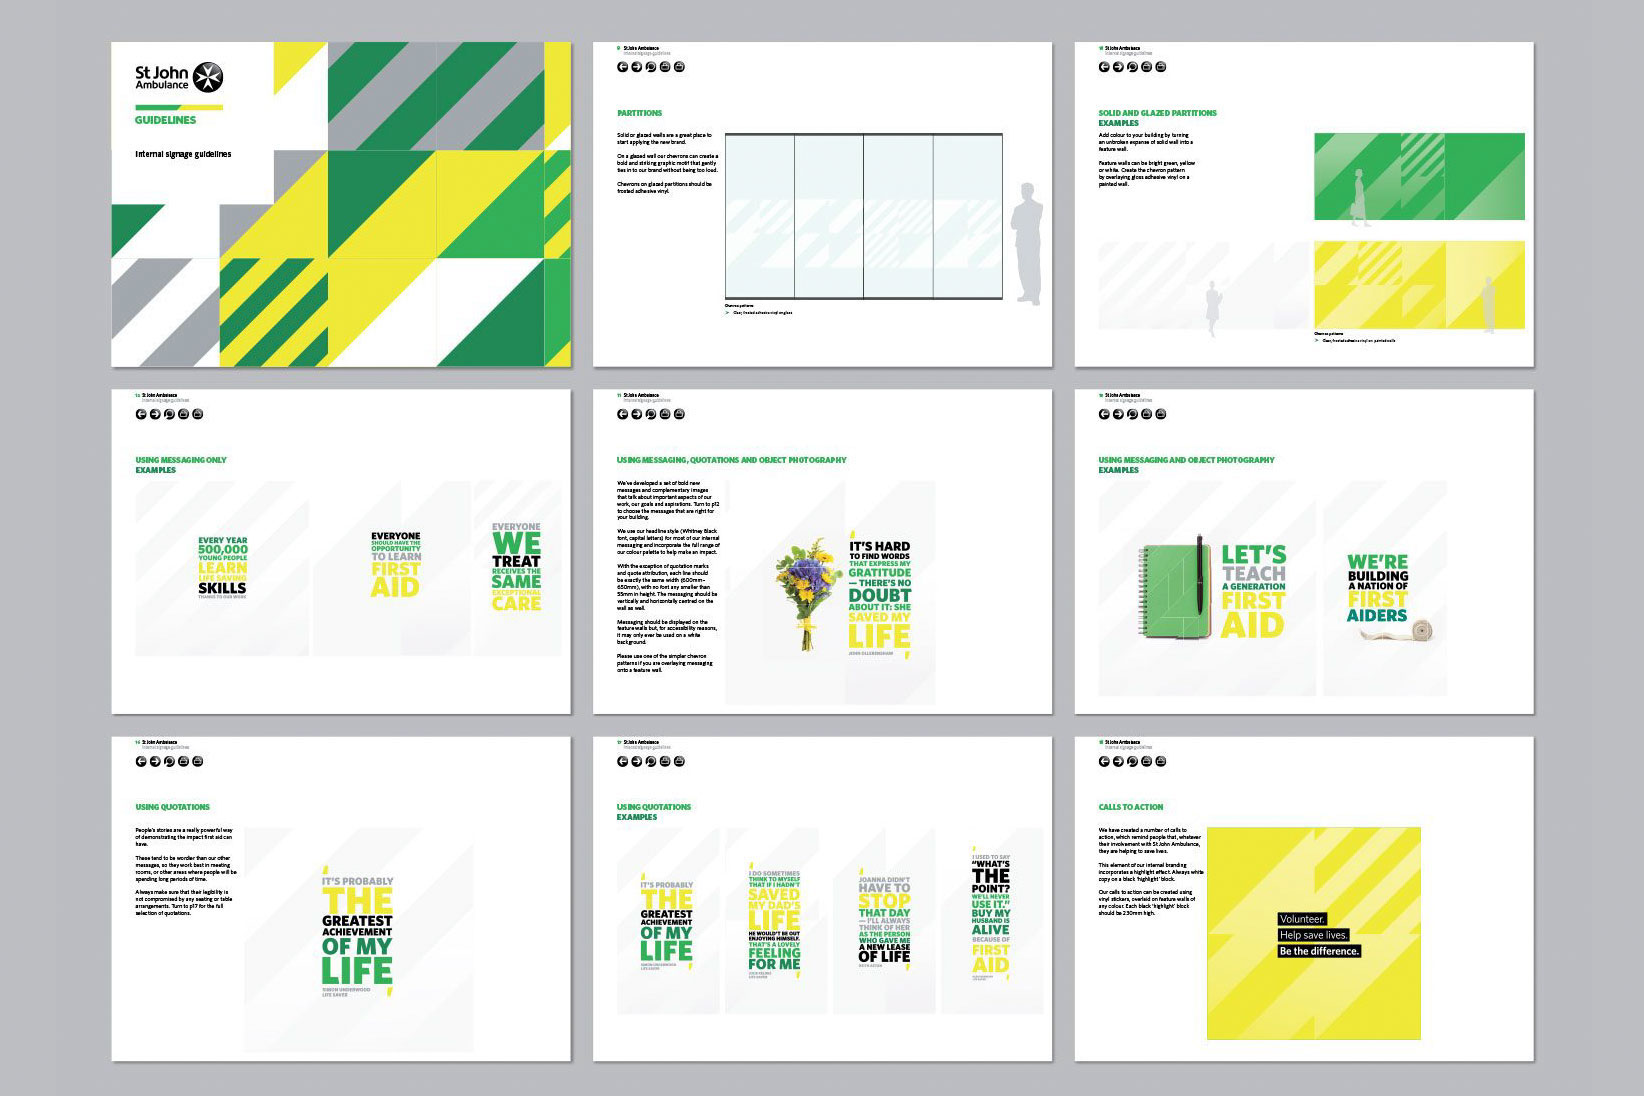 Image showing pages from the brand guidelines